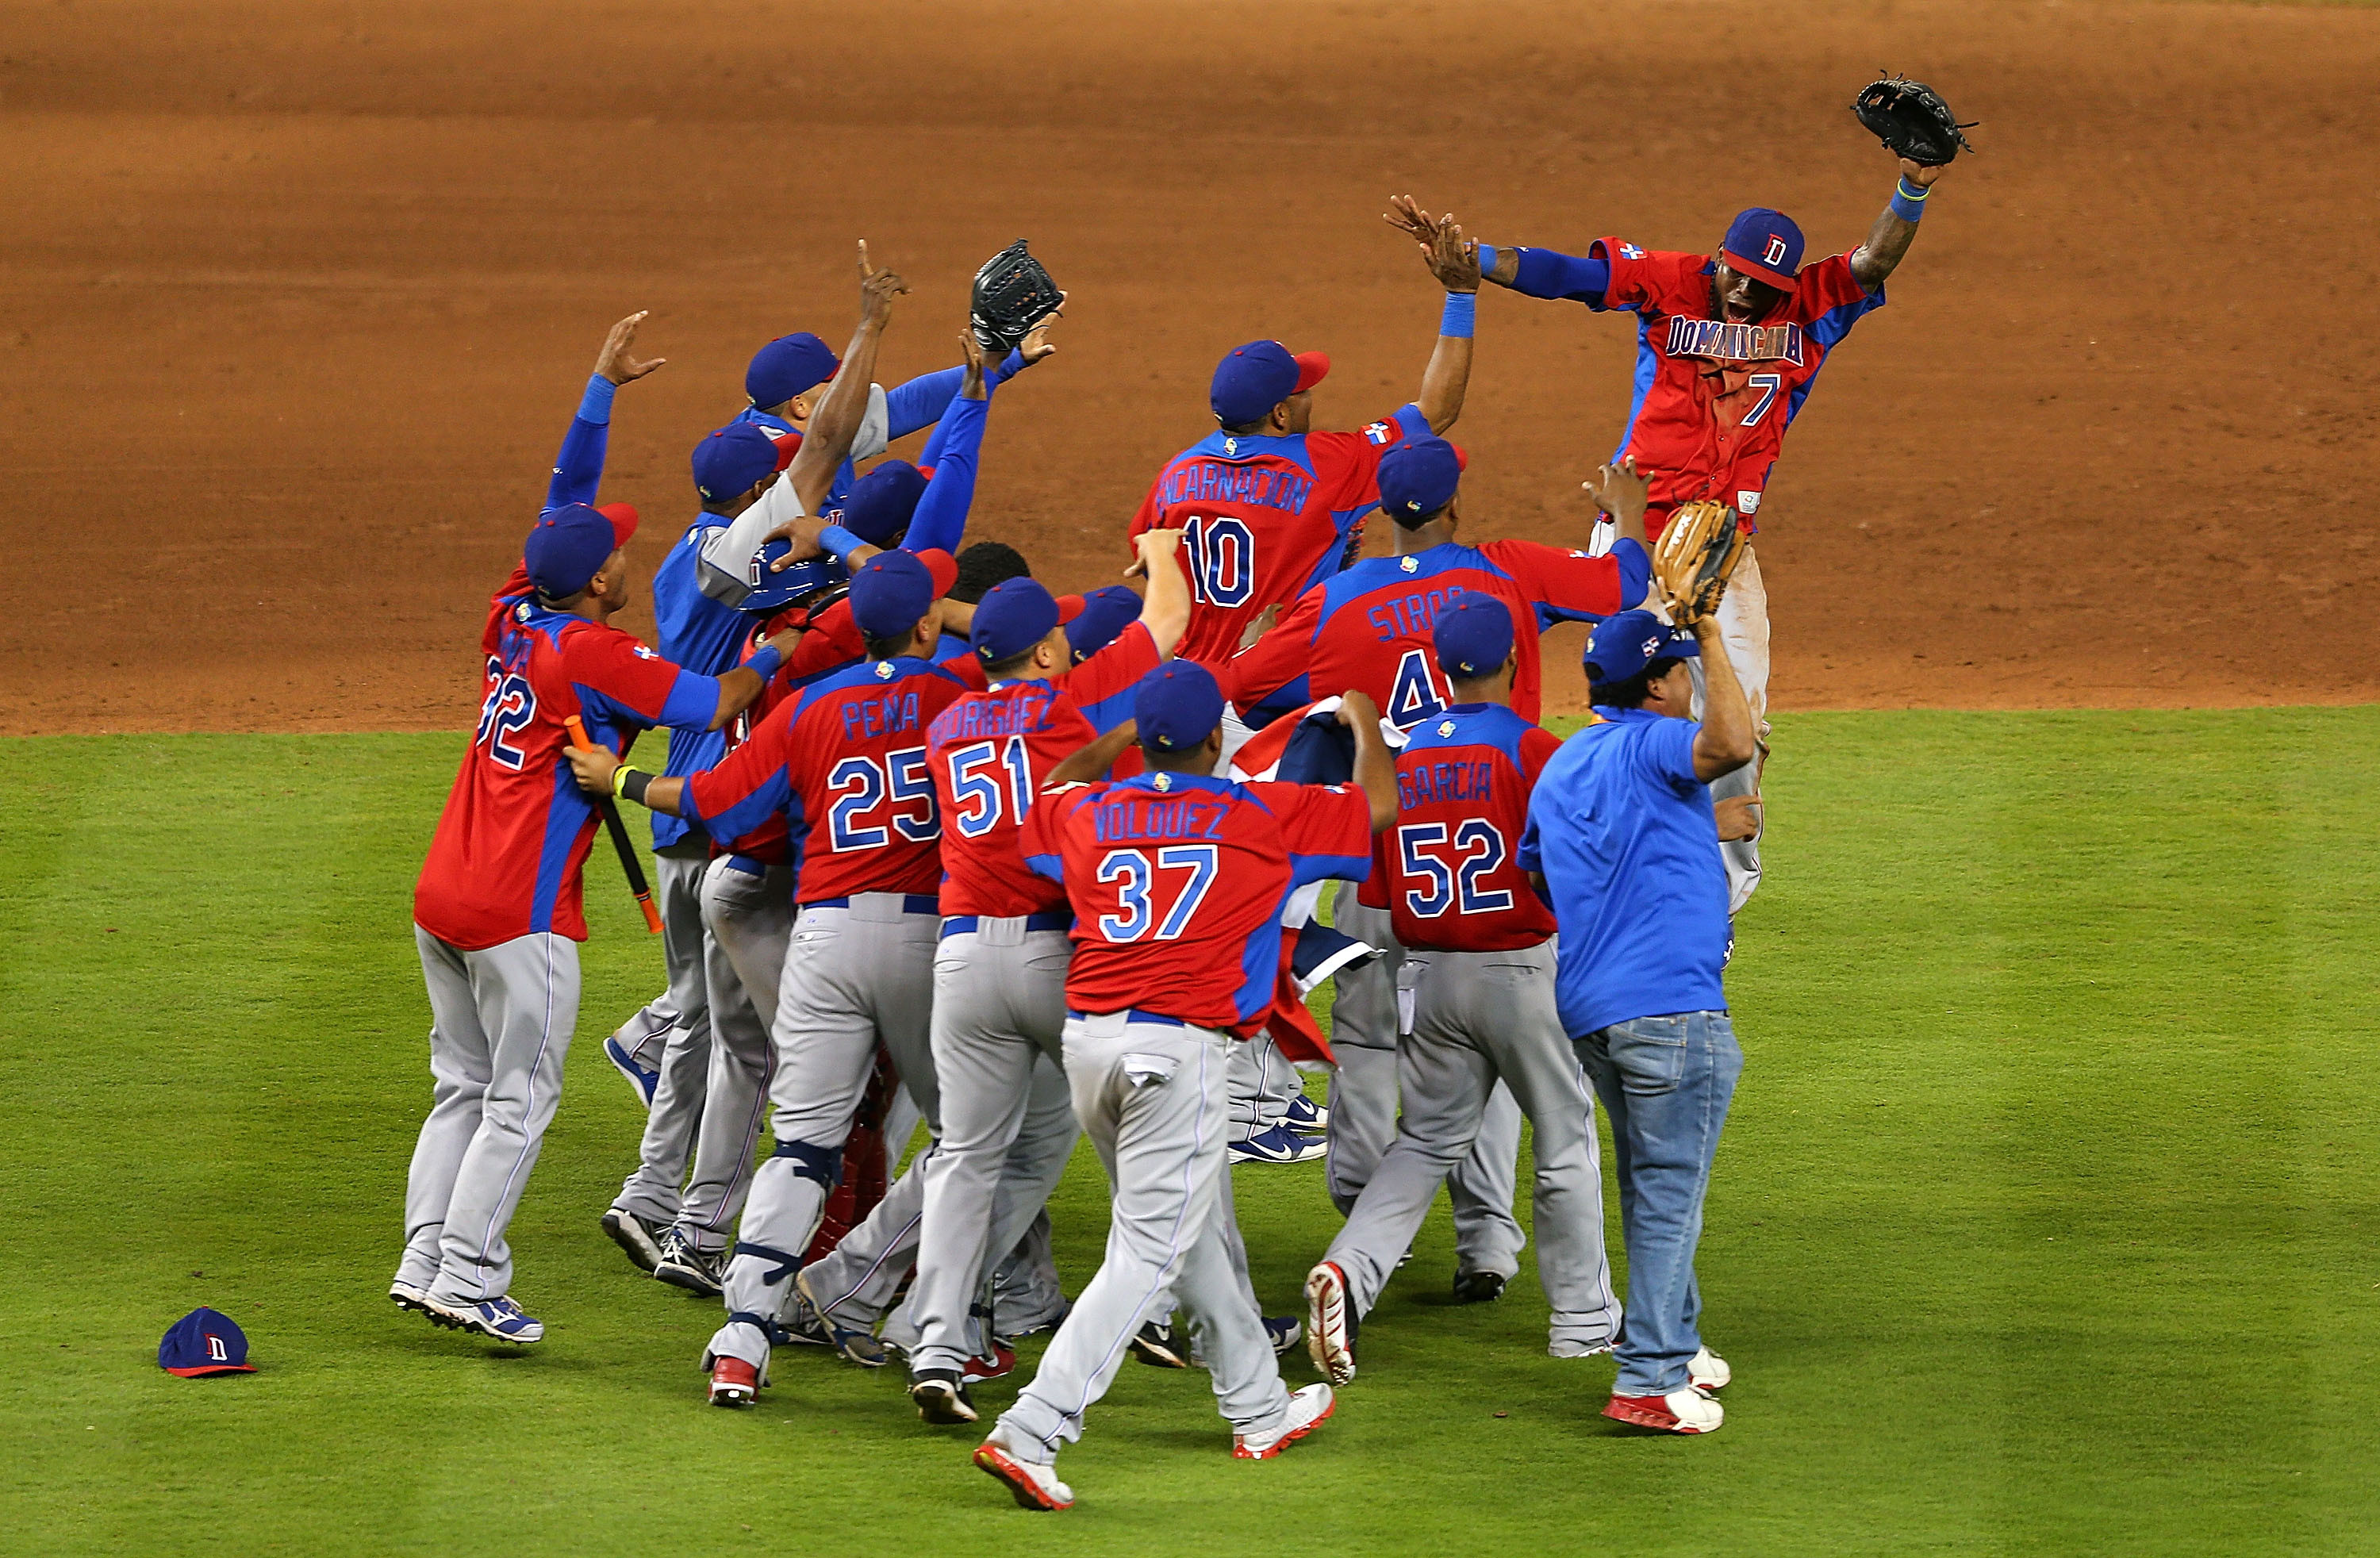 Dominican Republic 3-1 USA: World Baseball Classic match report